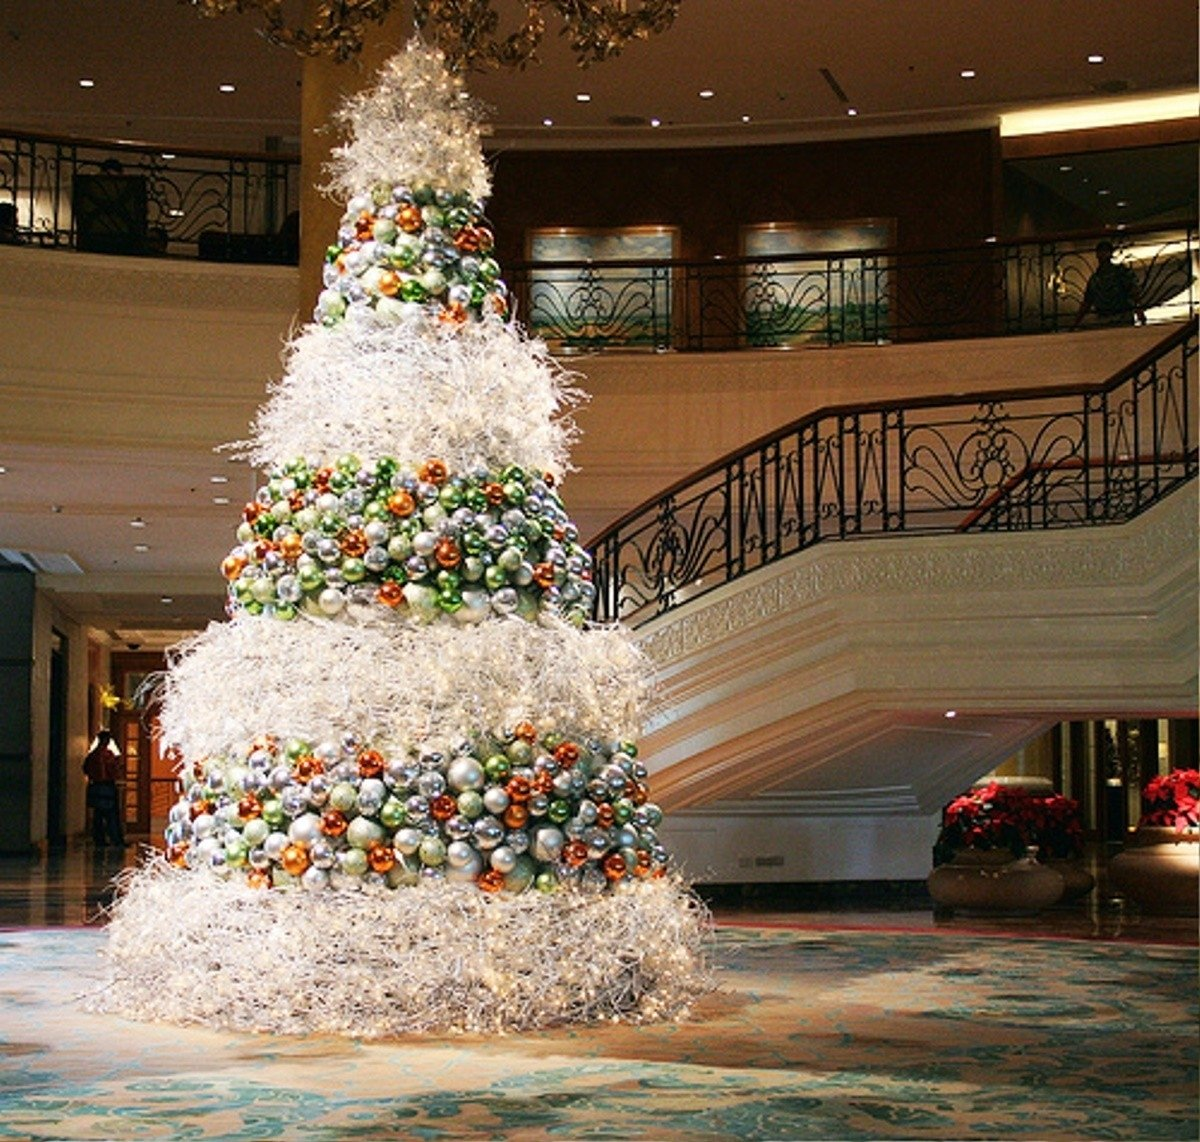 10 Most Popular Christmas Decorating Ideas For 2013 8 quick and easy christmas decorating tips decorspot